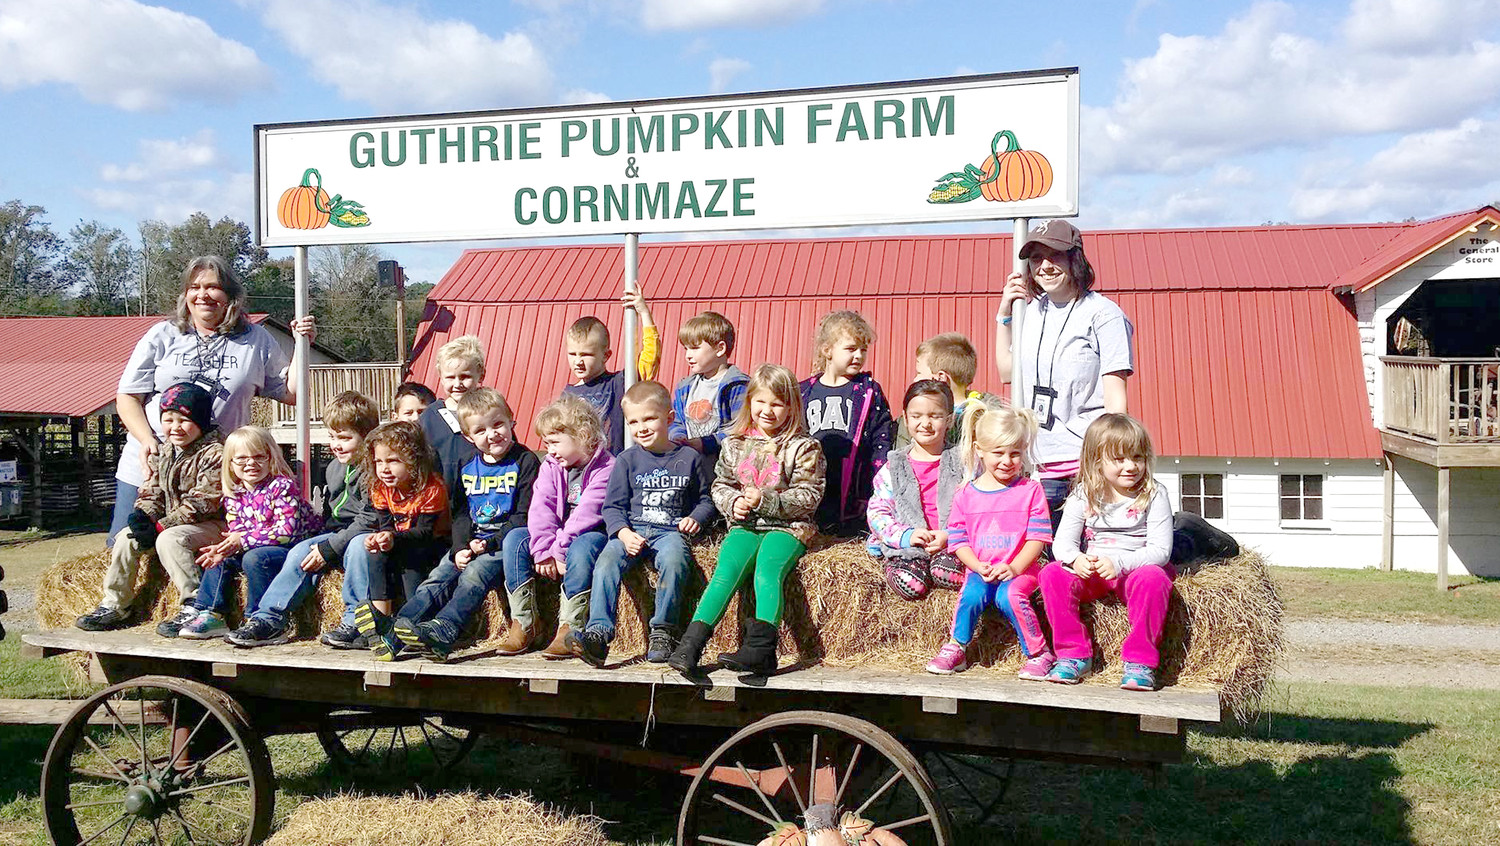 STUDENTS in Pat Williams' pre-K class at Waterville Community Elementary School recently went on a festive fall field trip, visiting the Guthrie Pumpkin Farm & Cornmaze.